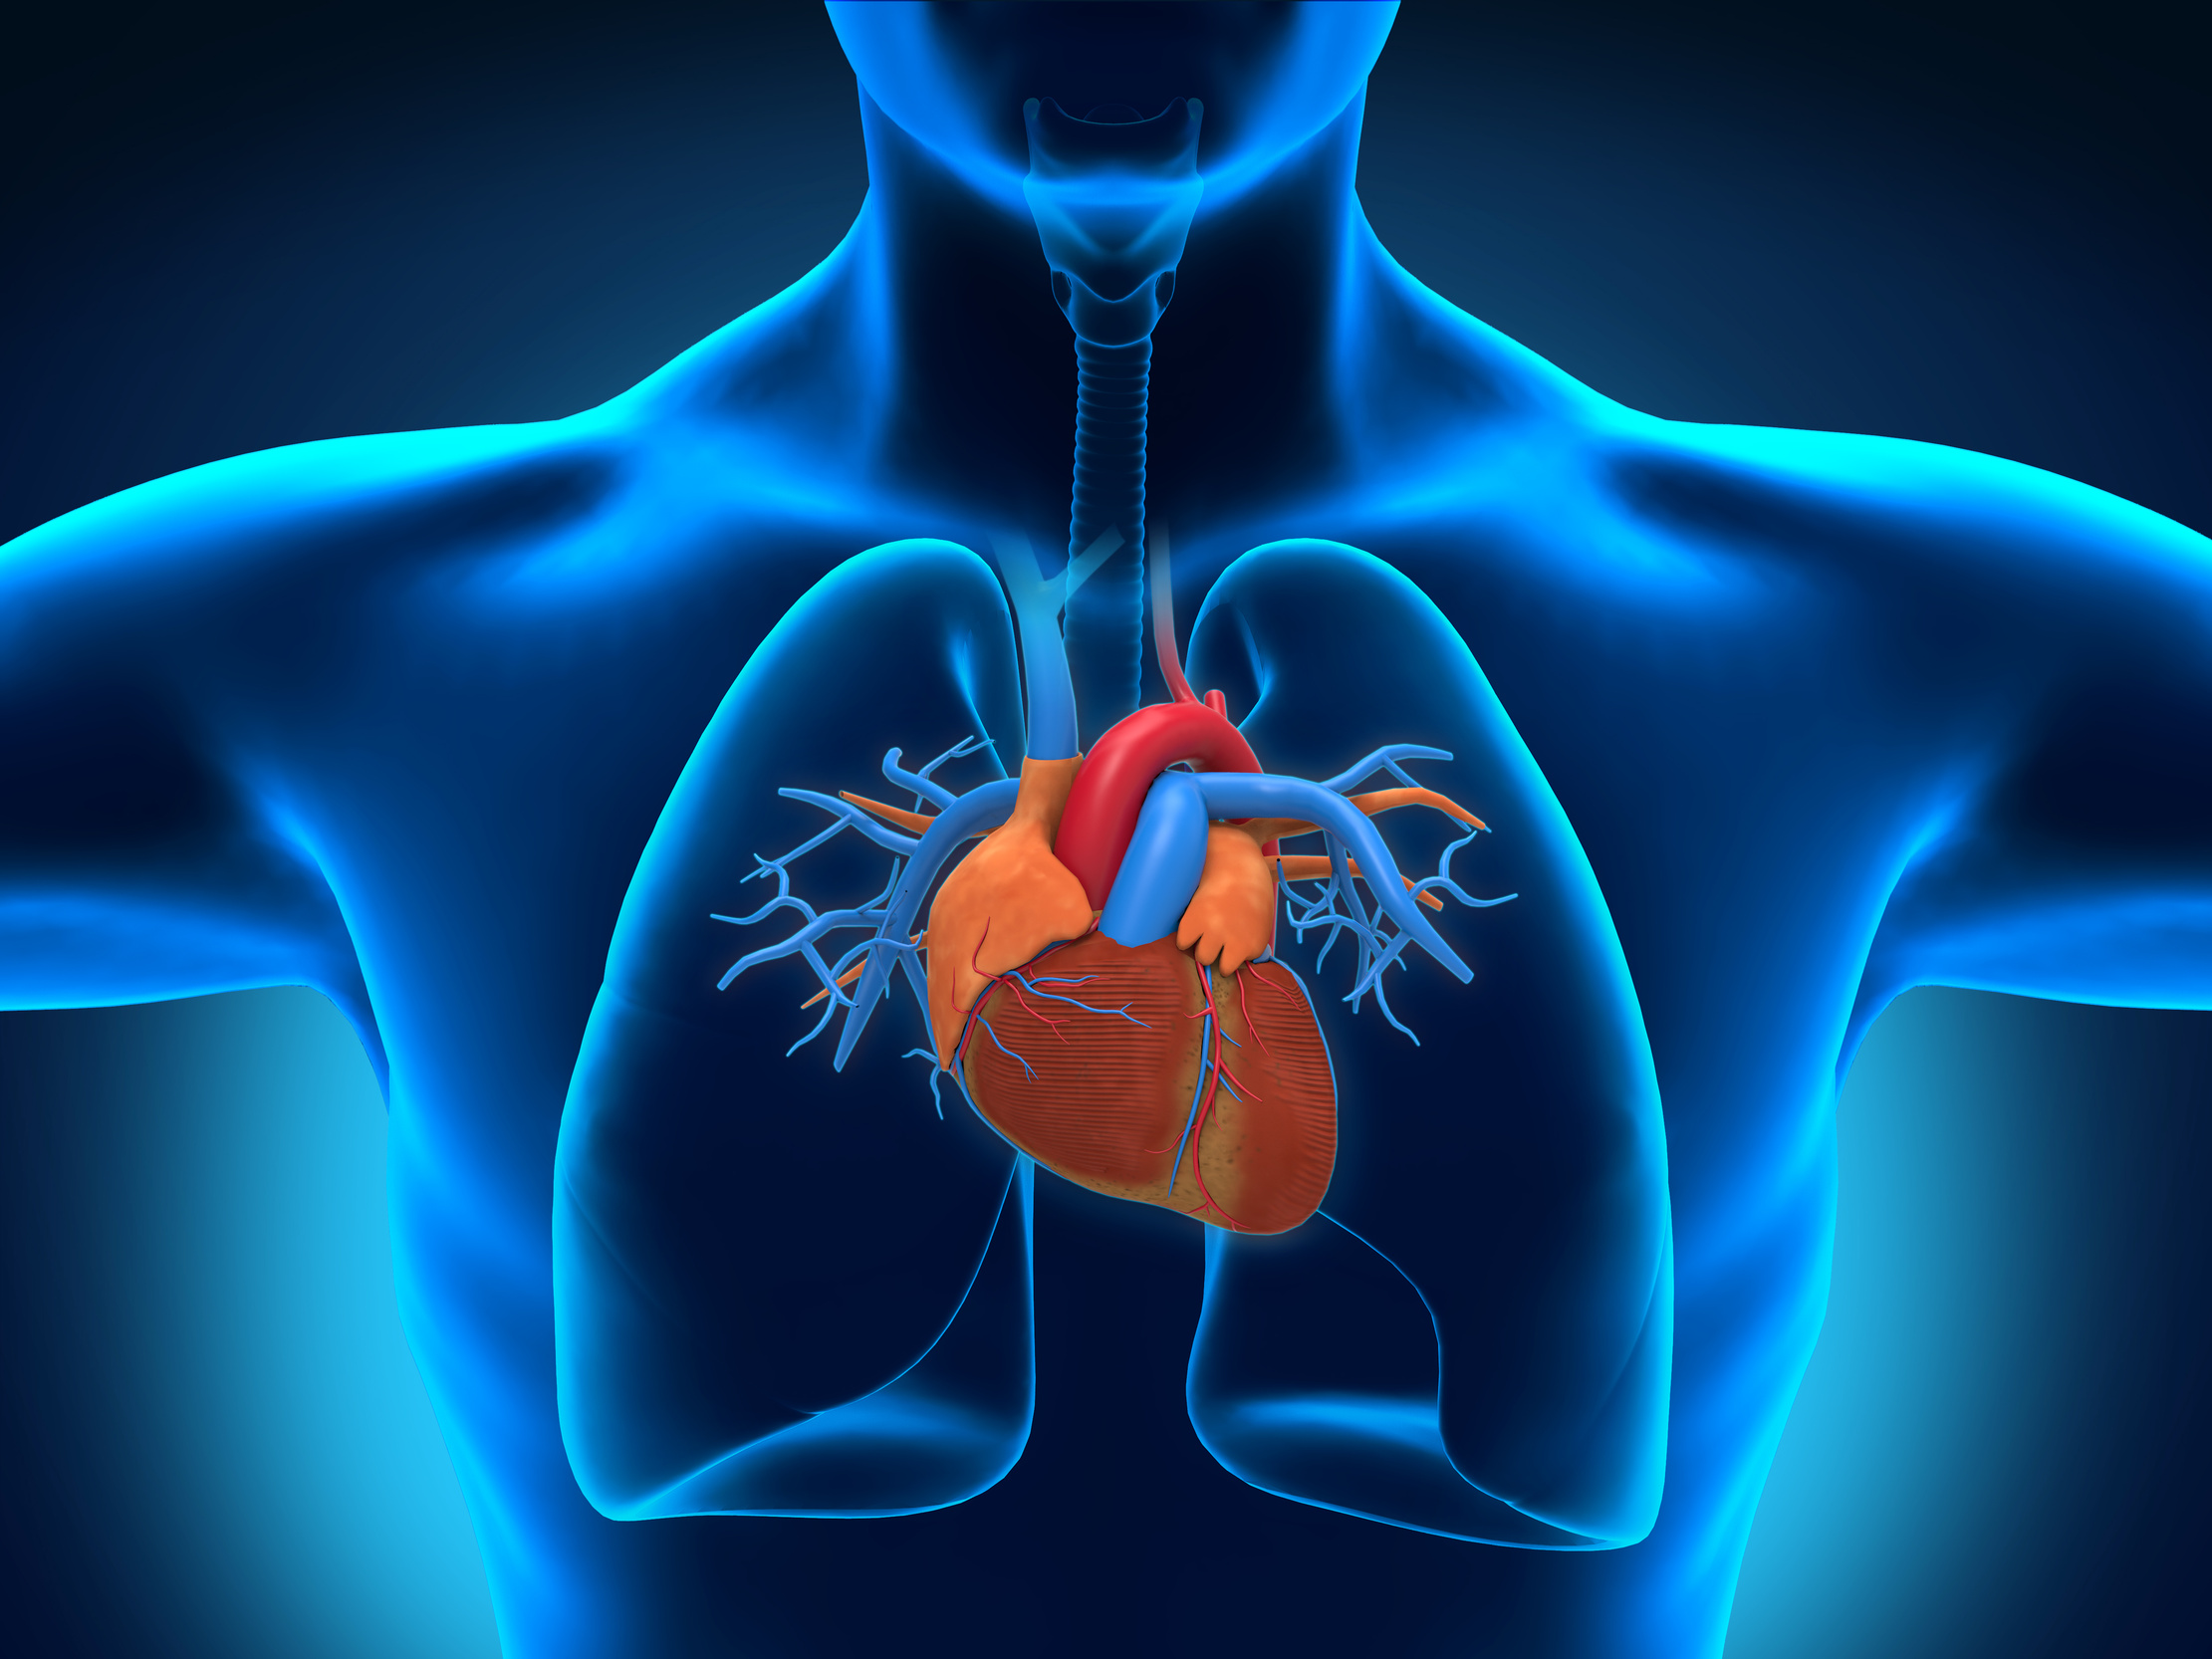 Cardiology course in Assam by IGNOU